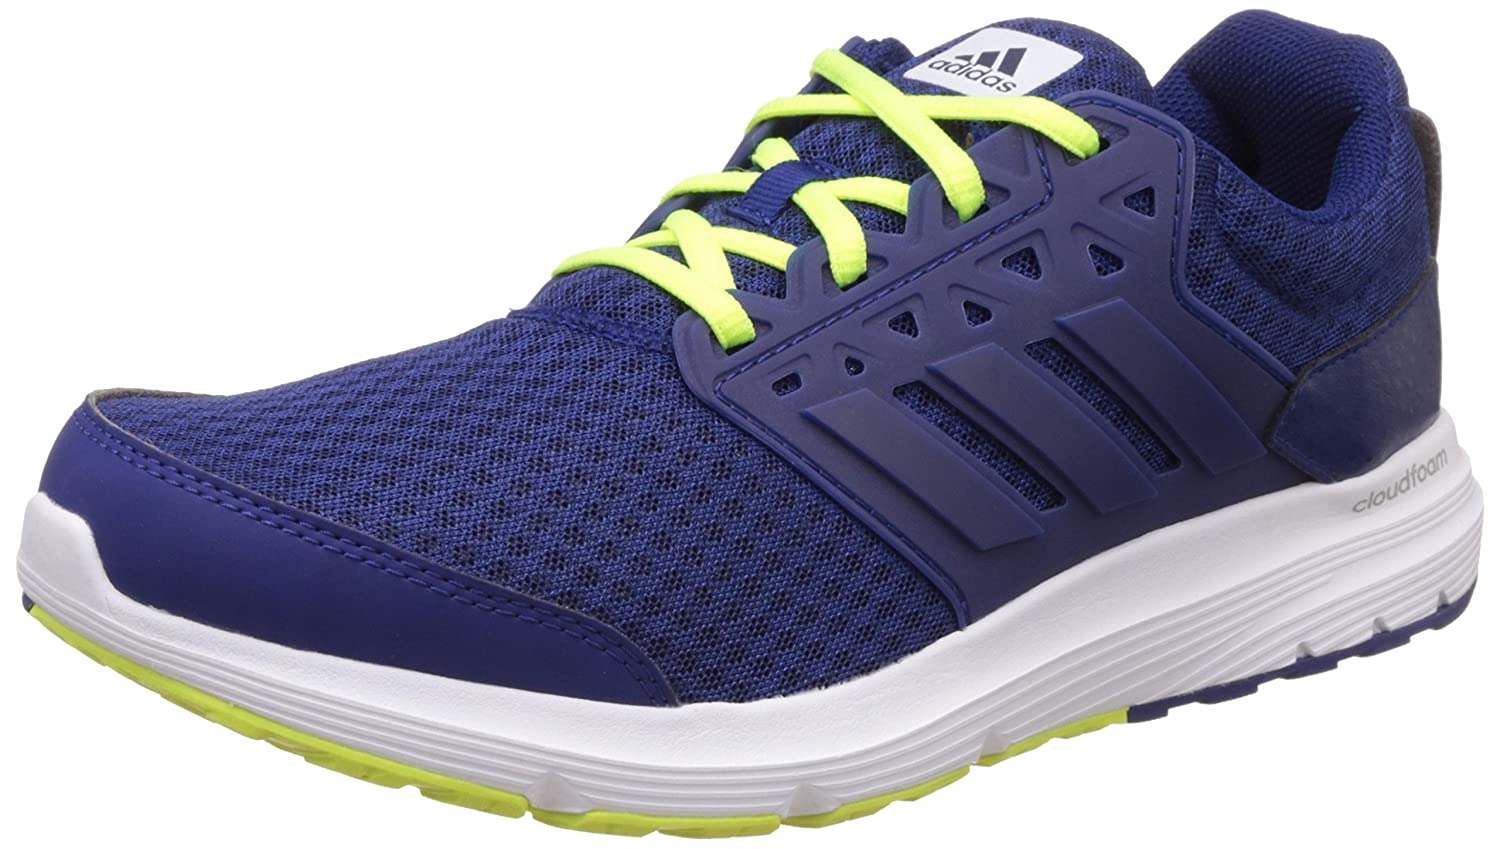 Amazon.com: Adidas - Galaxy 3 M - AQ6544 - Color: Green-Navy blue-White -  Size: 9.5: Shoes